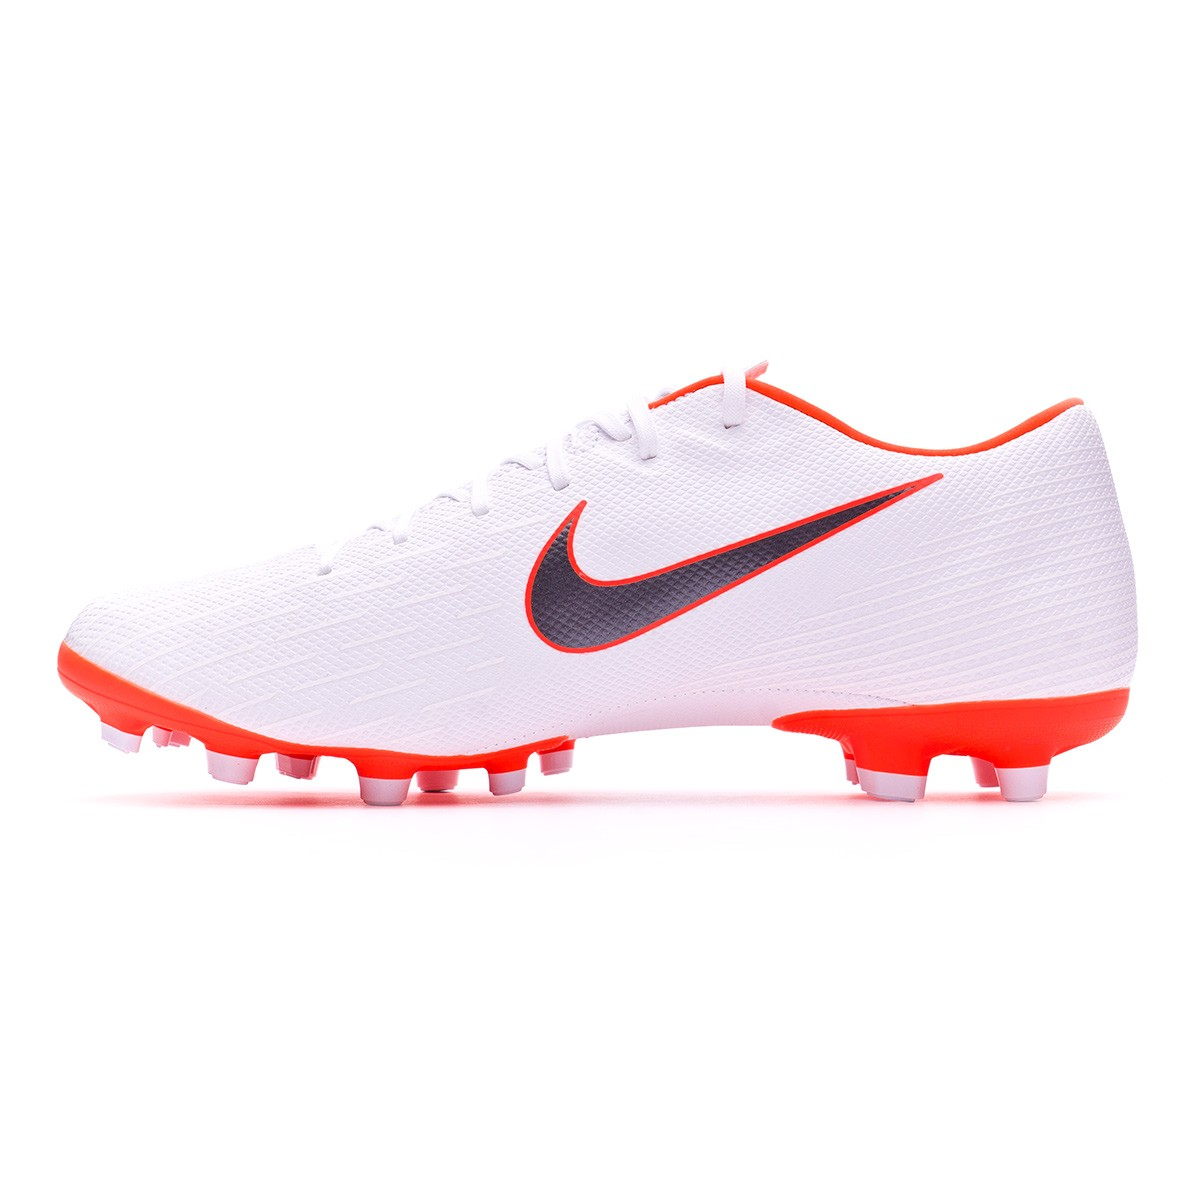 105e35bc3c0 Football Boots Nike Mercurial Vapor XII Academy MG White-Metallic cool grey-Total  orange - Tienda de fútbol Fútbol Emotion